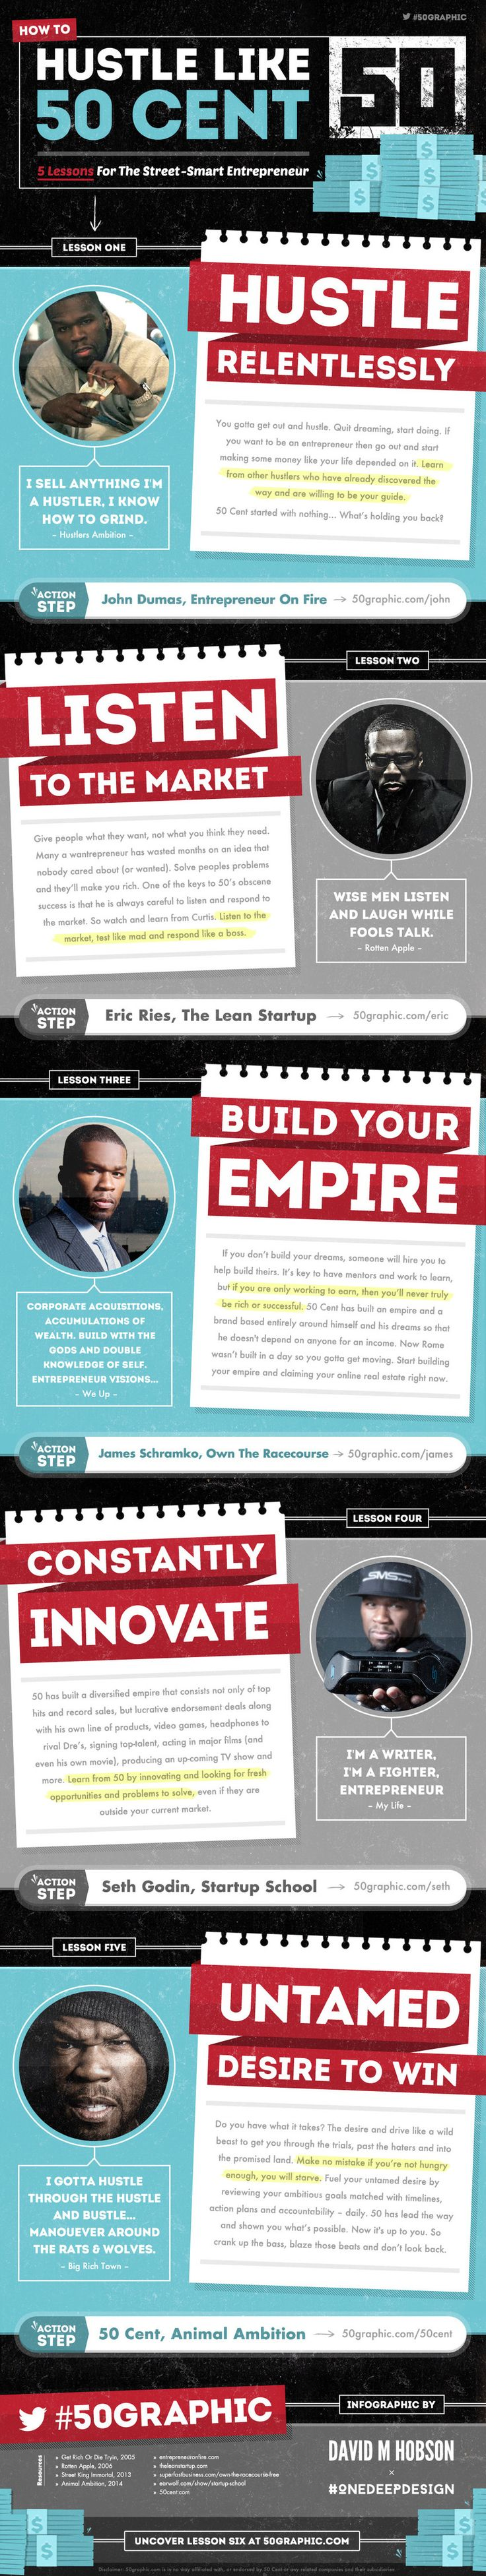 Building Your Empire The 50 Cent Way #50Graphic